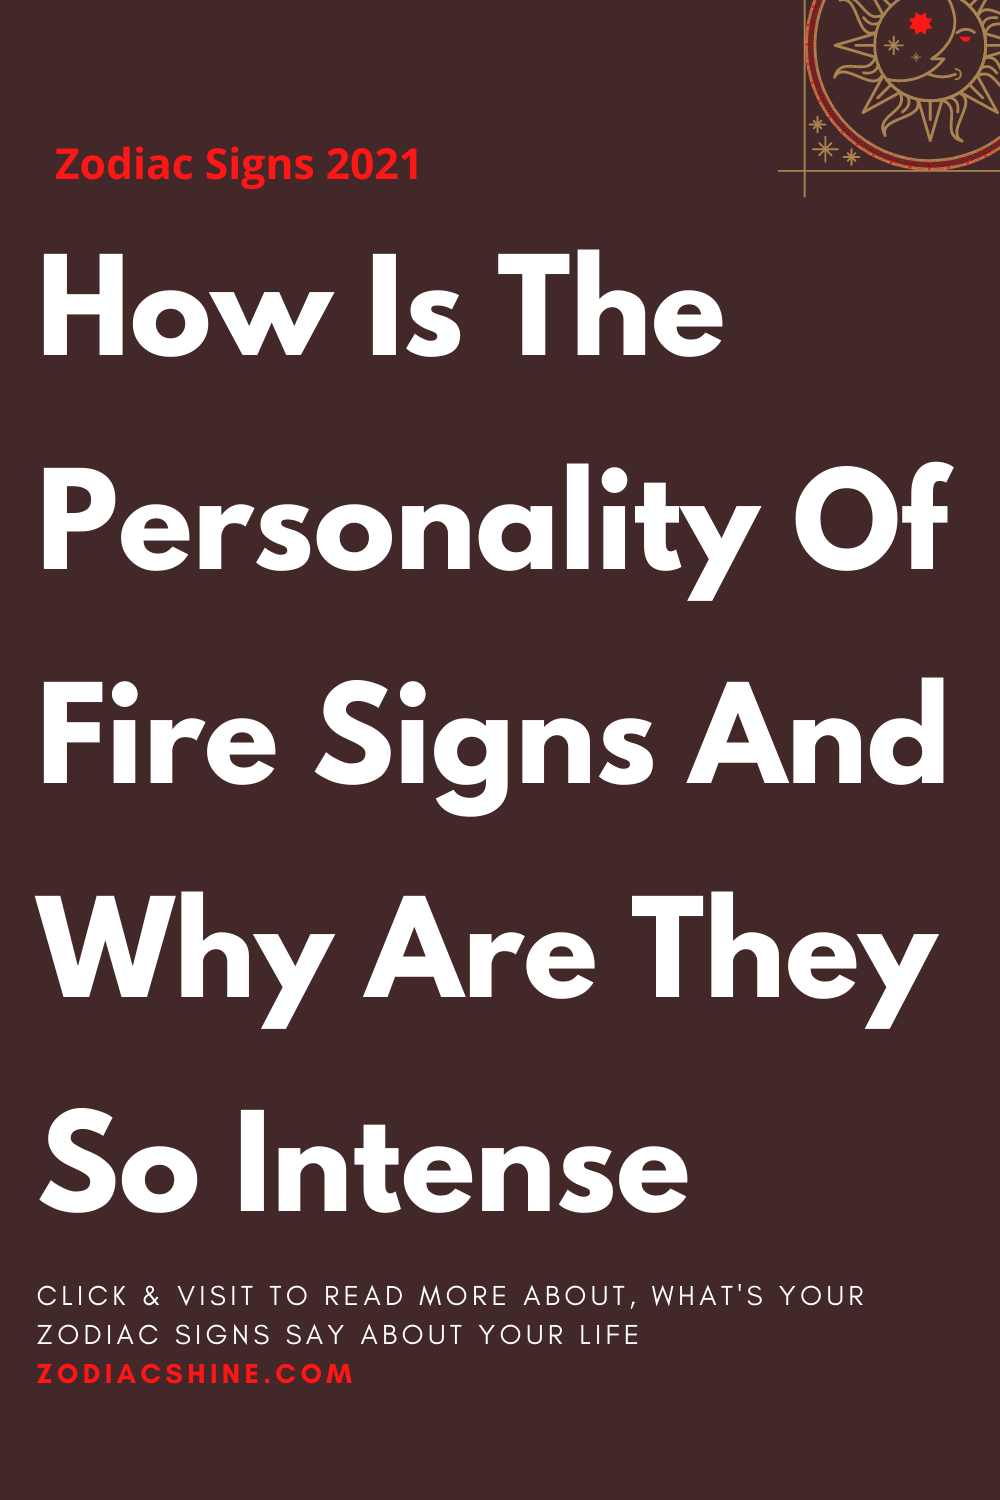 How Is The Personality Of Fire Signs And Why Are They So Intense